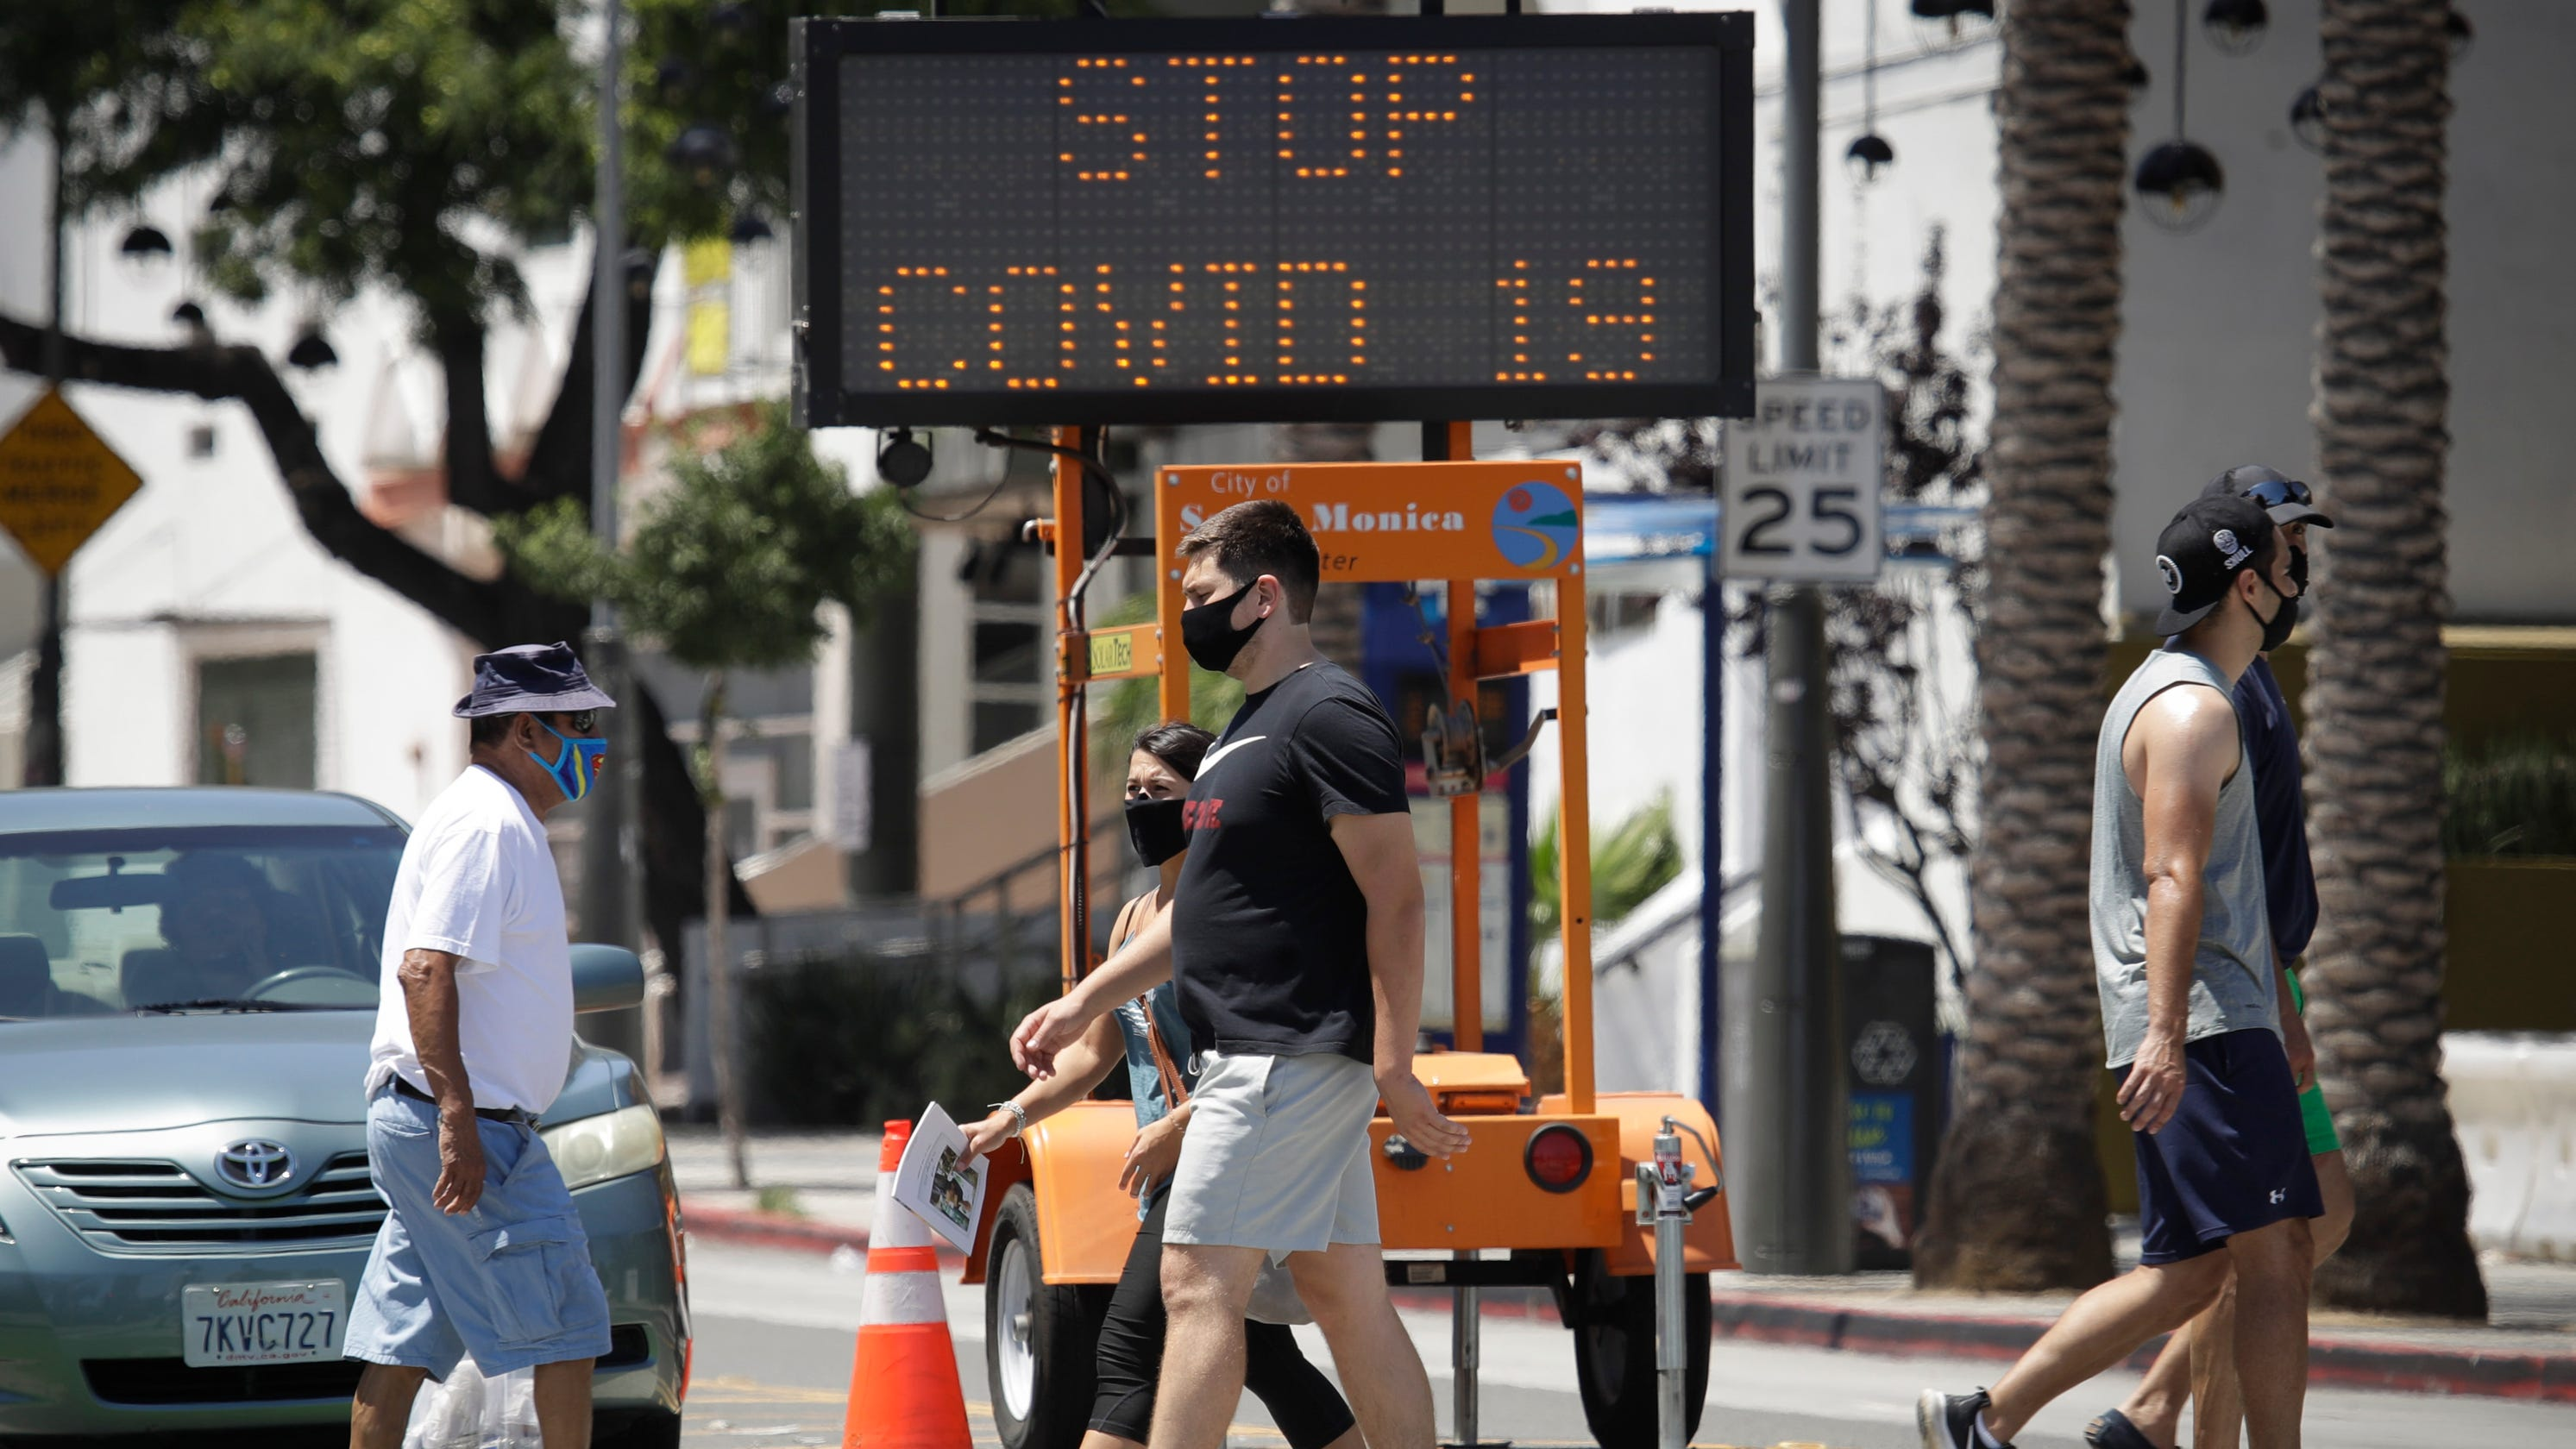 Coronavirus live updates: CDC director says tide is turning in the South; 10th MLB team postpones game; Another US senator tests positive